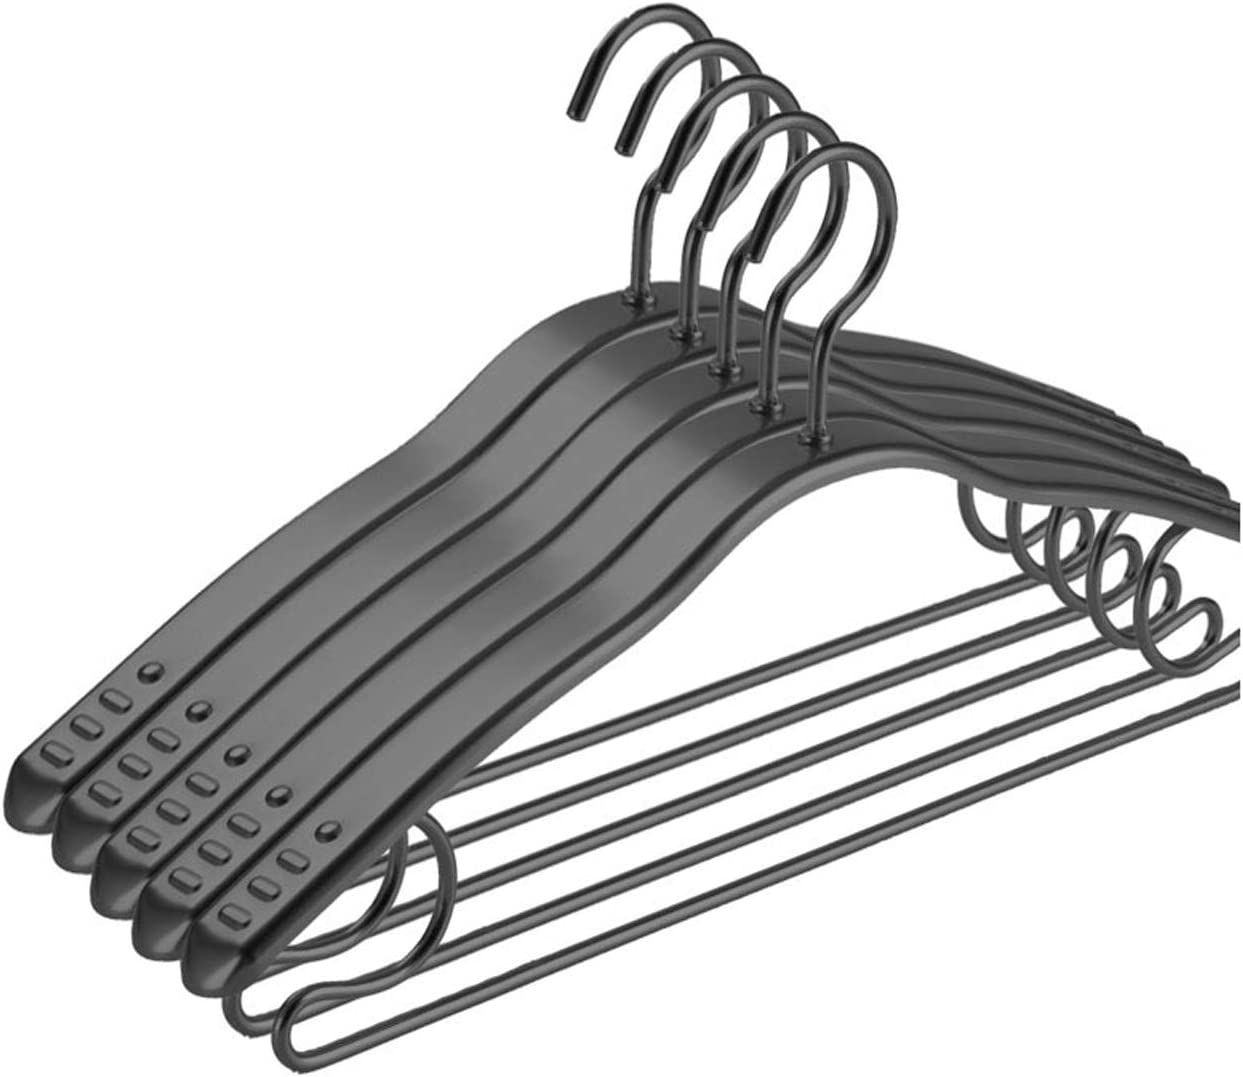 YiHYSj Metal Trouser Hangers Max 68% OFF Heavy Clothes Colorado Springs Mall Coat